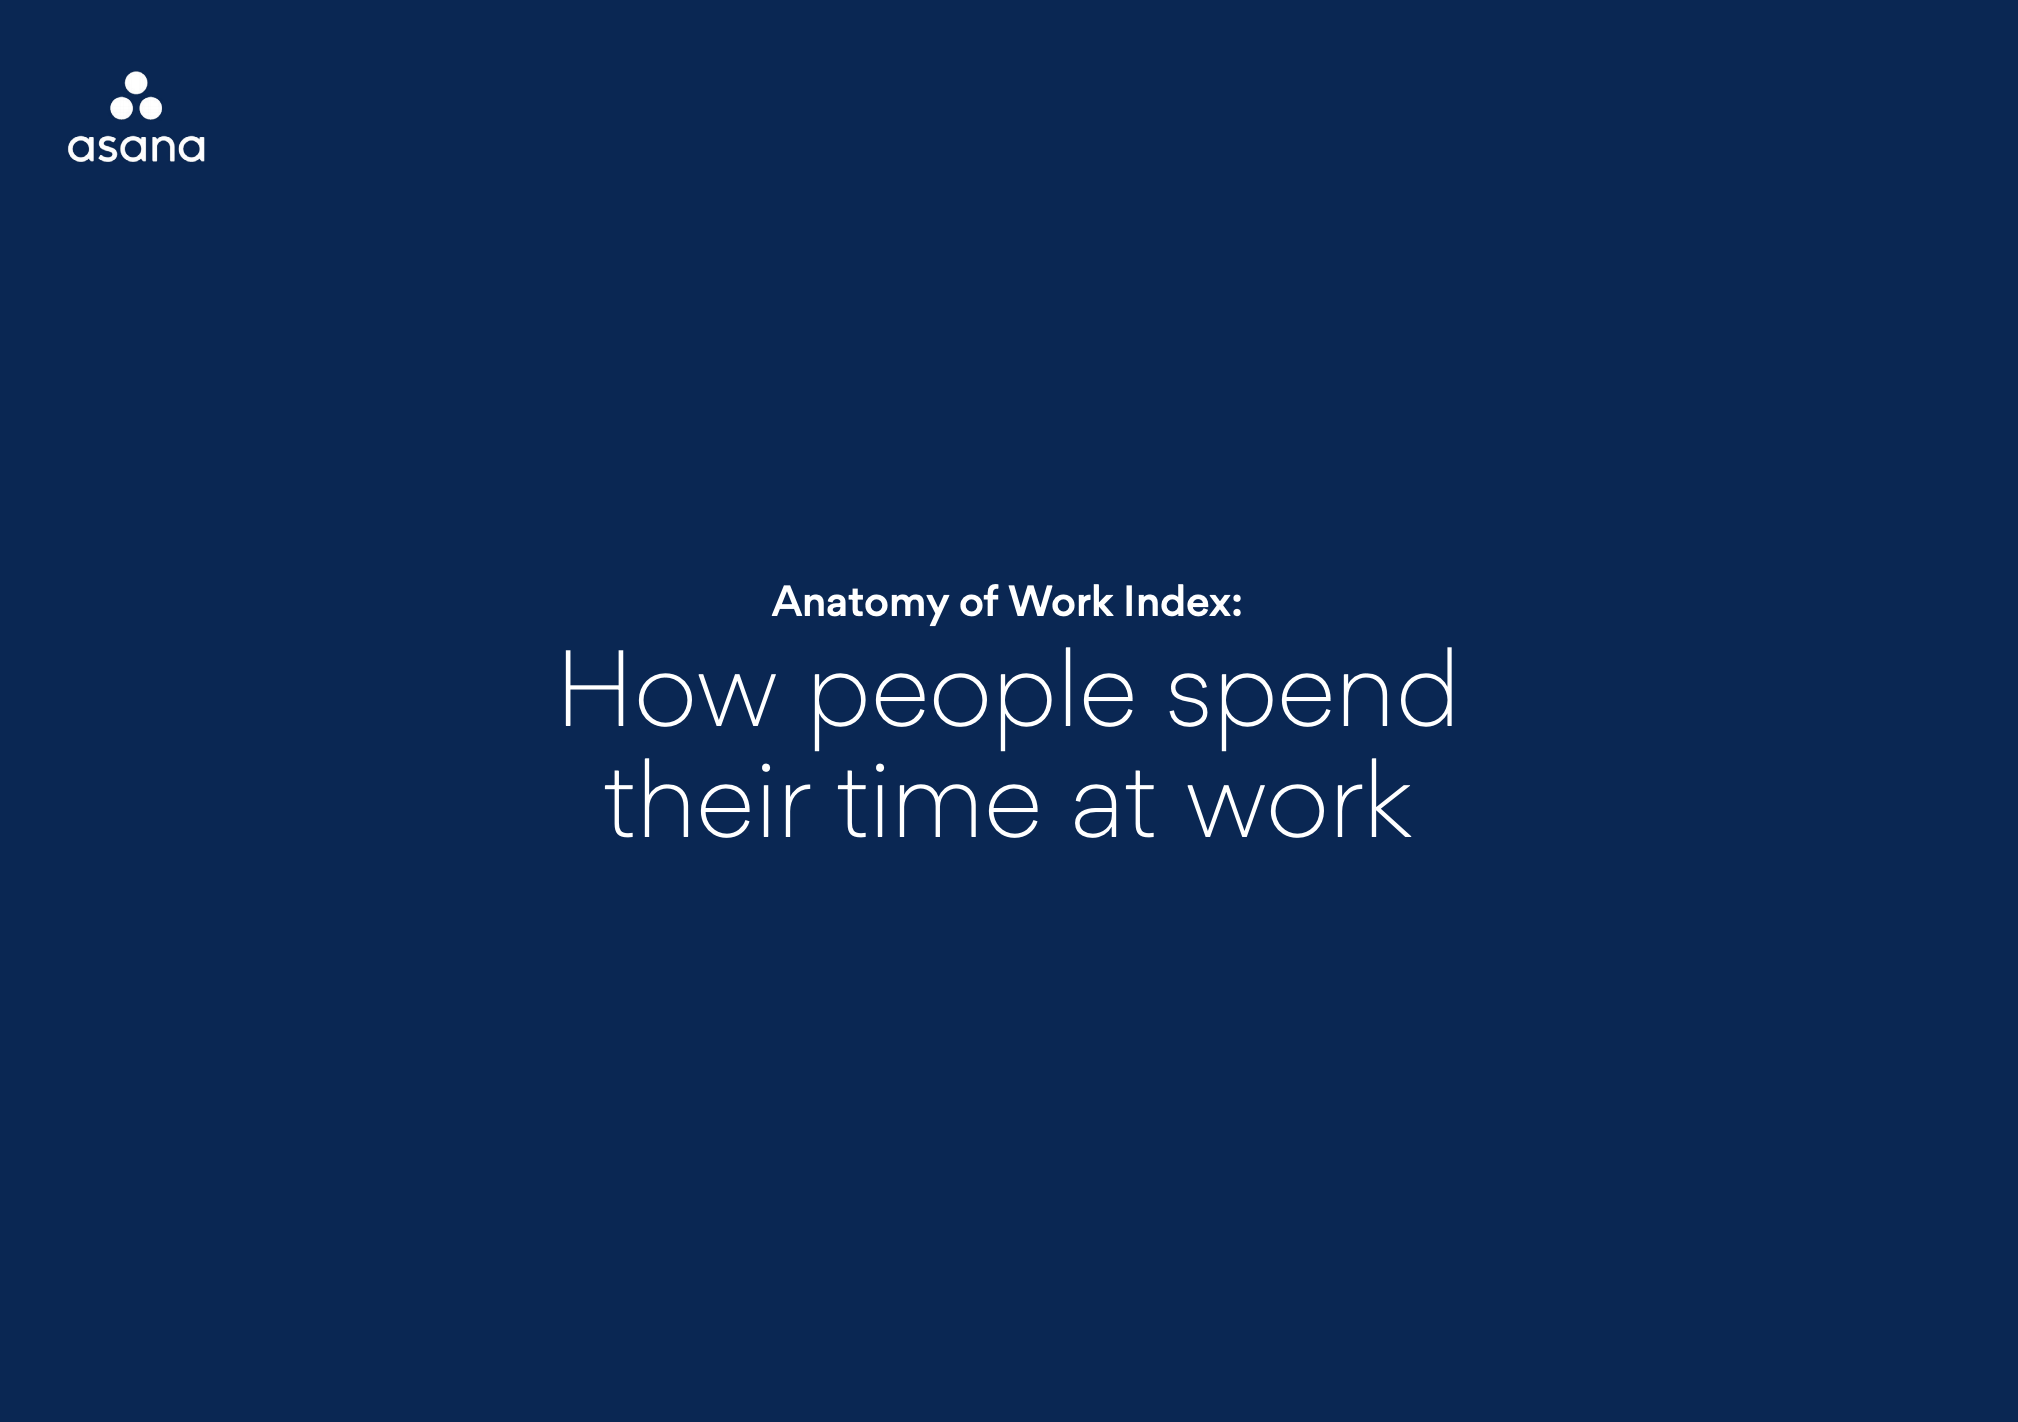 Asana - Anatomy of Work - How people spend their time at work report - Cover